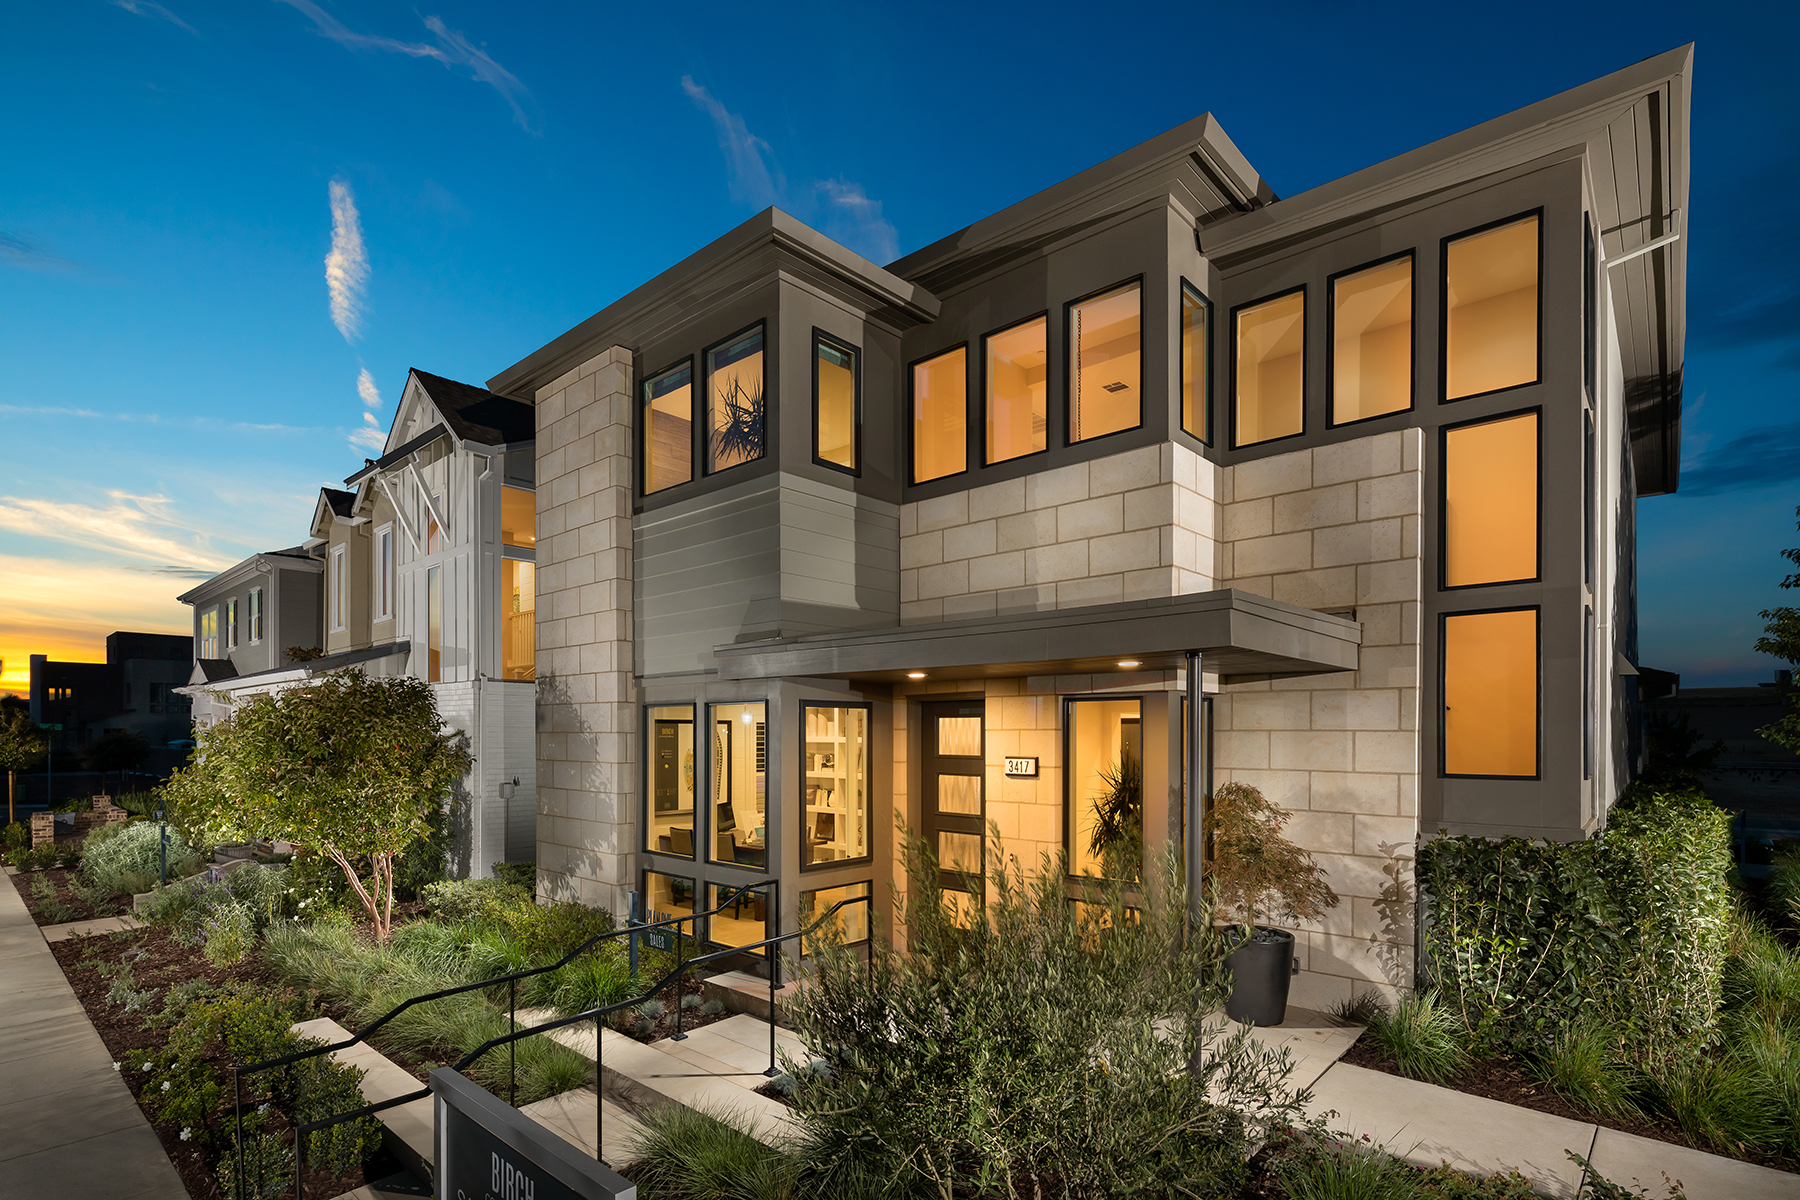 Birch at McKinley Village    | Sacramento, California    AWARDS  +  2017 Northern California MAME Award  for Best Design of a Detached Hom 2,000-2,500 Sq. Ft.  +  2017 Gold Nugget Award of Merit  for Best Single Family Detached Home 2,000-2,499 Sq. Ft.